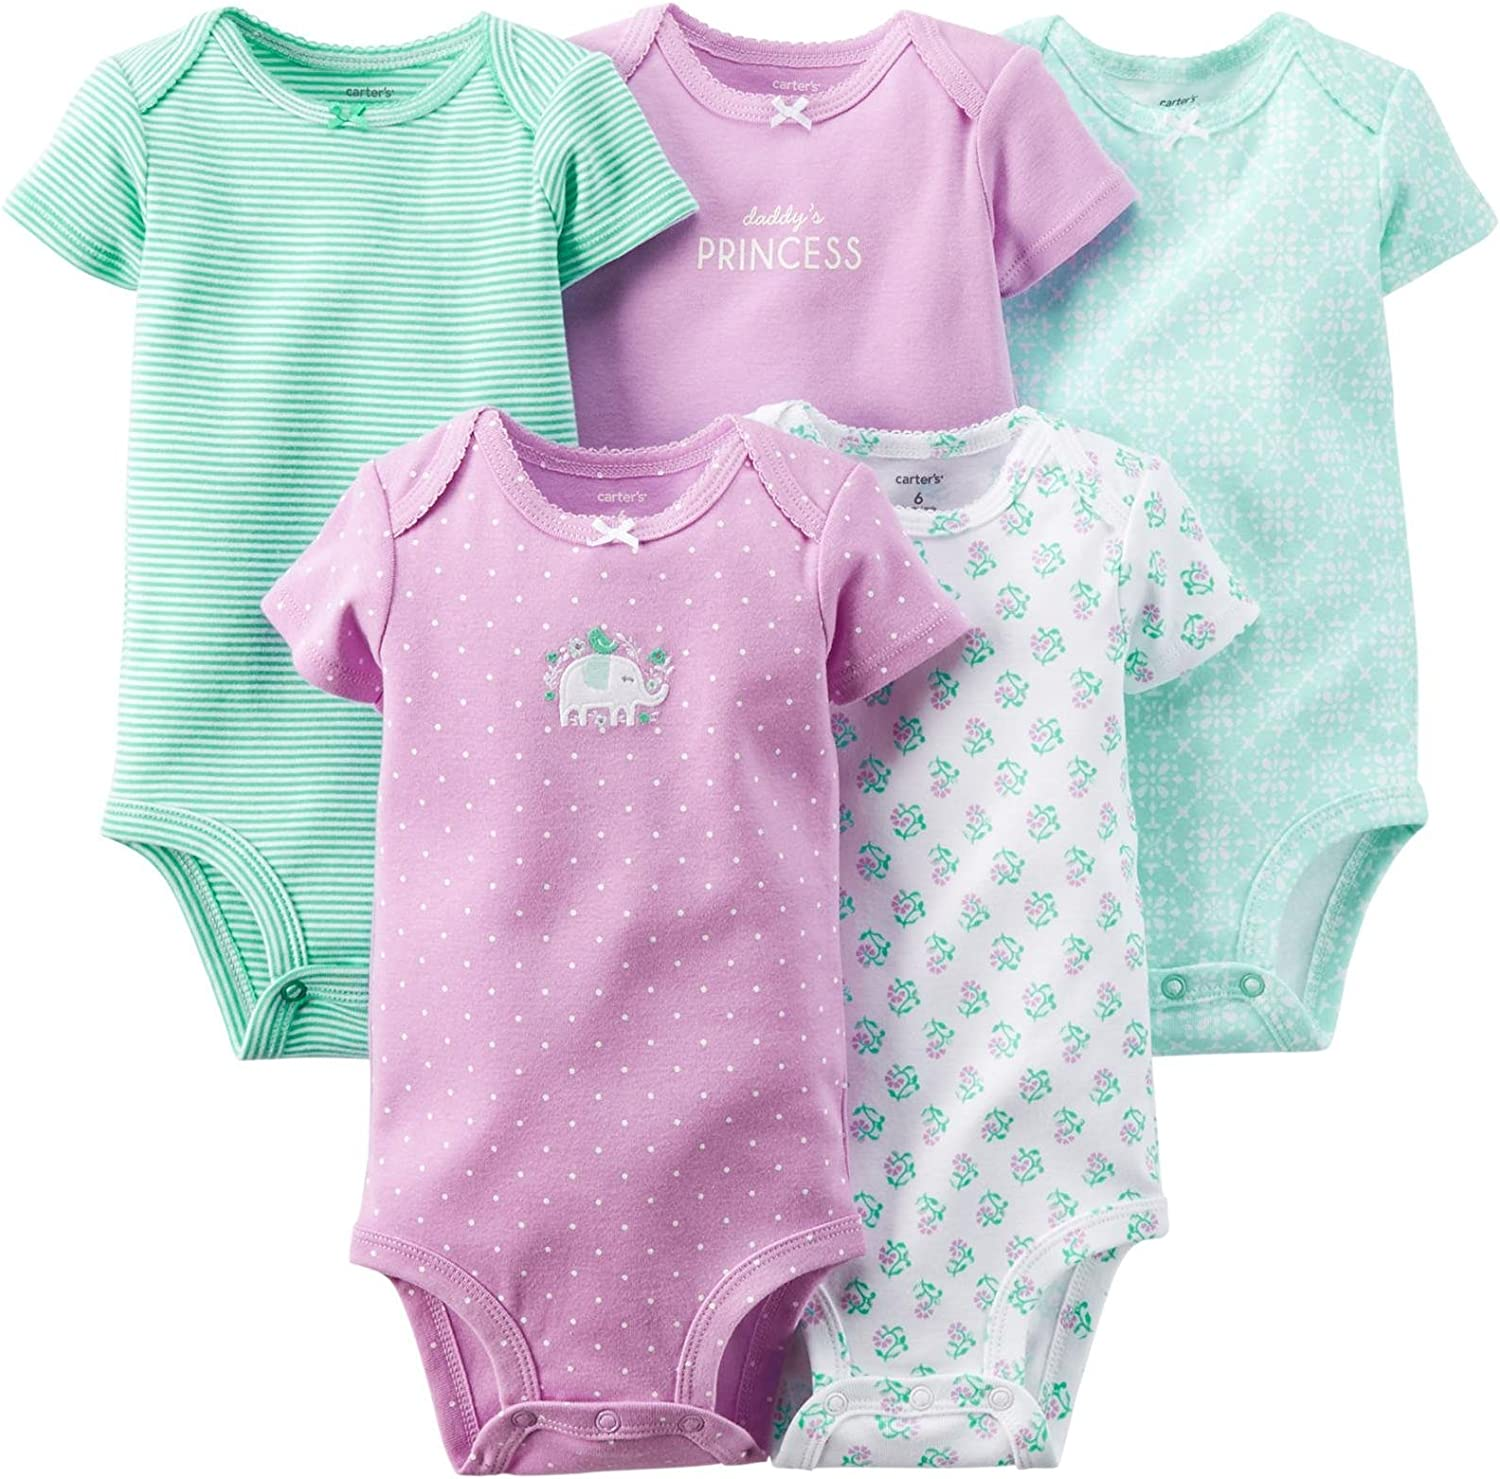 Girls in bodysuits pics Amazon Com Carter S Baby Girls Bodysuits Baby Clothing Shoes Jewelry